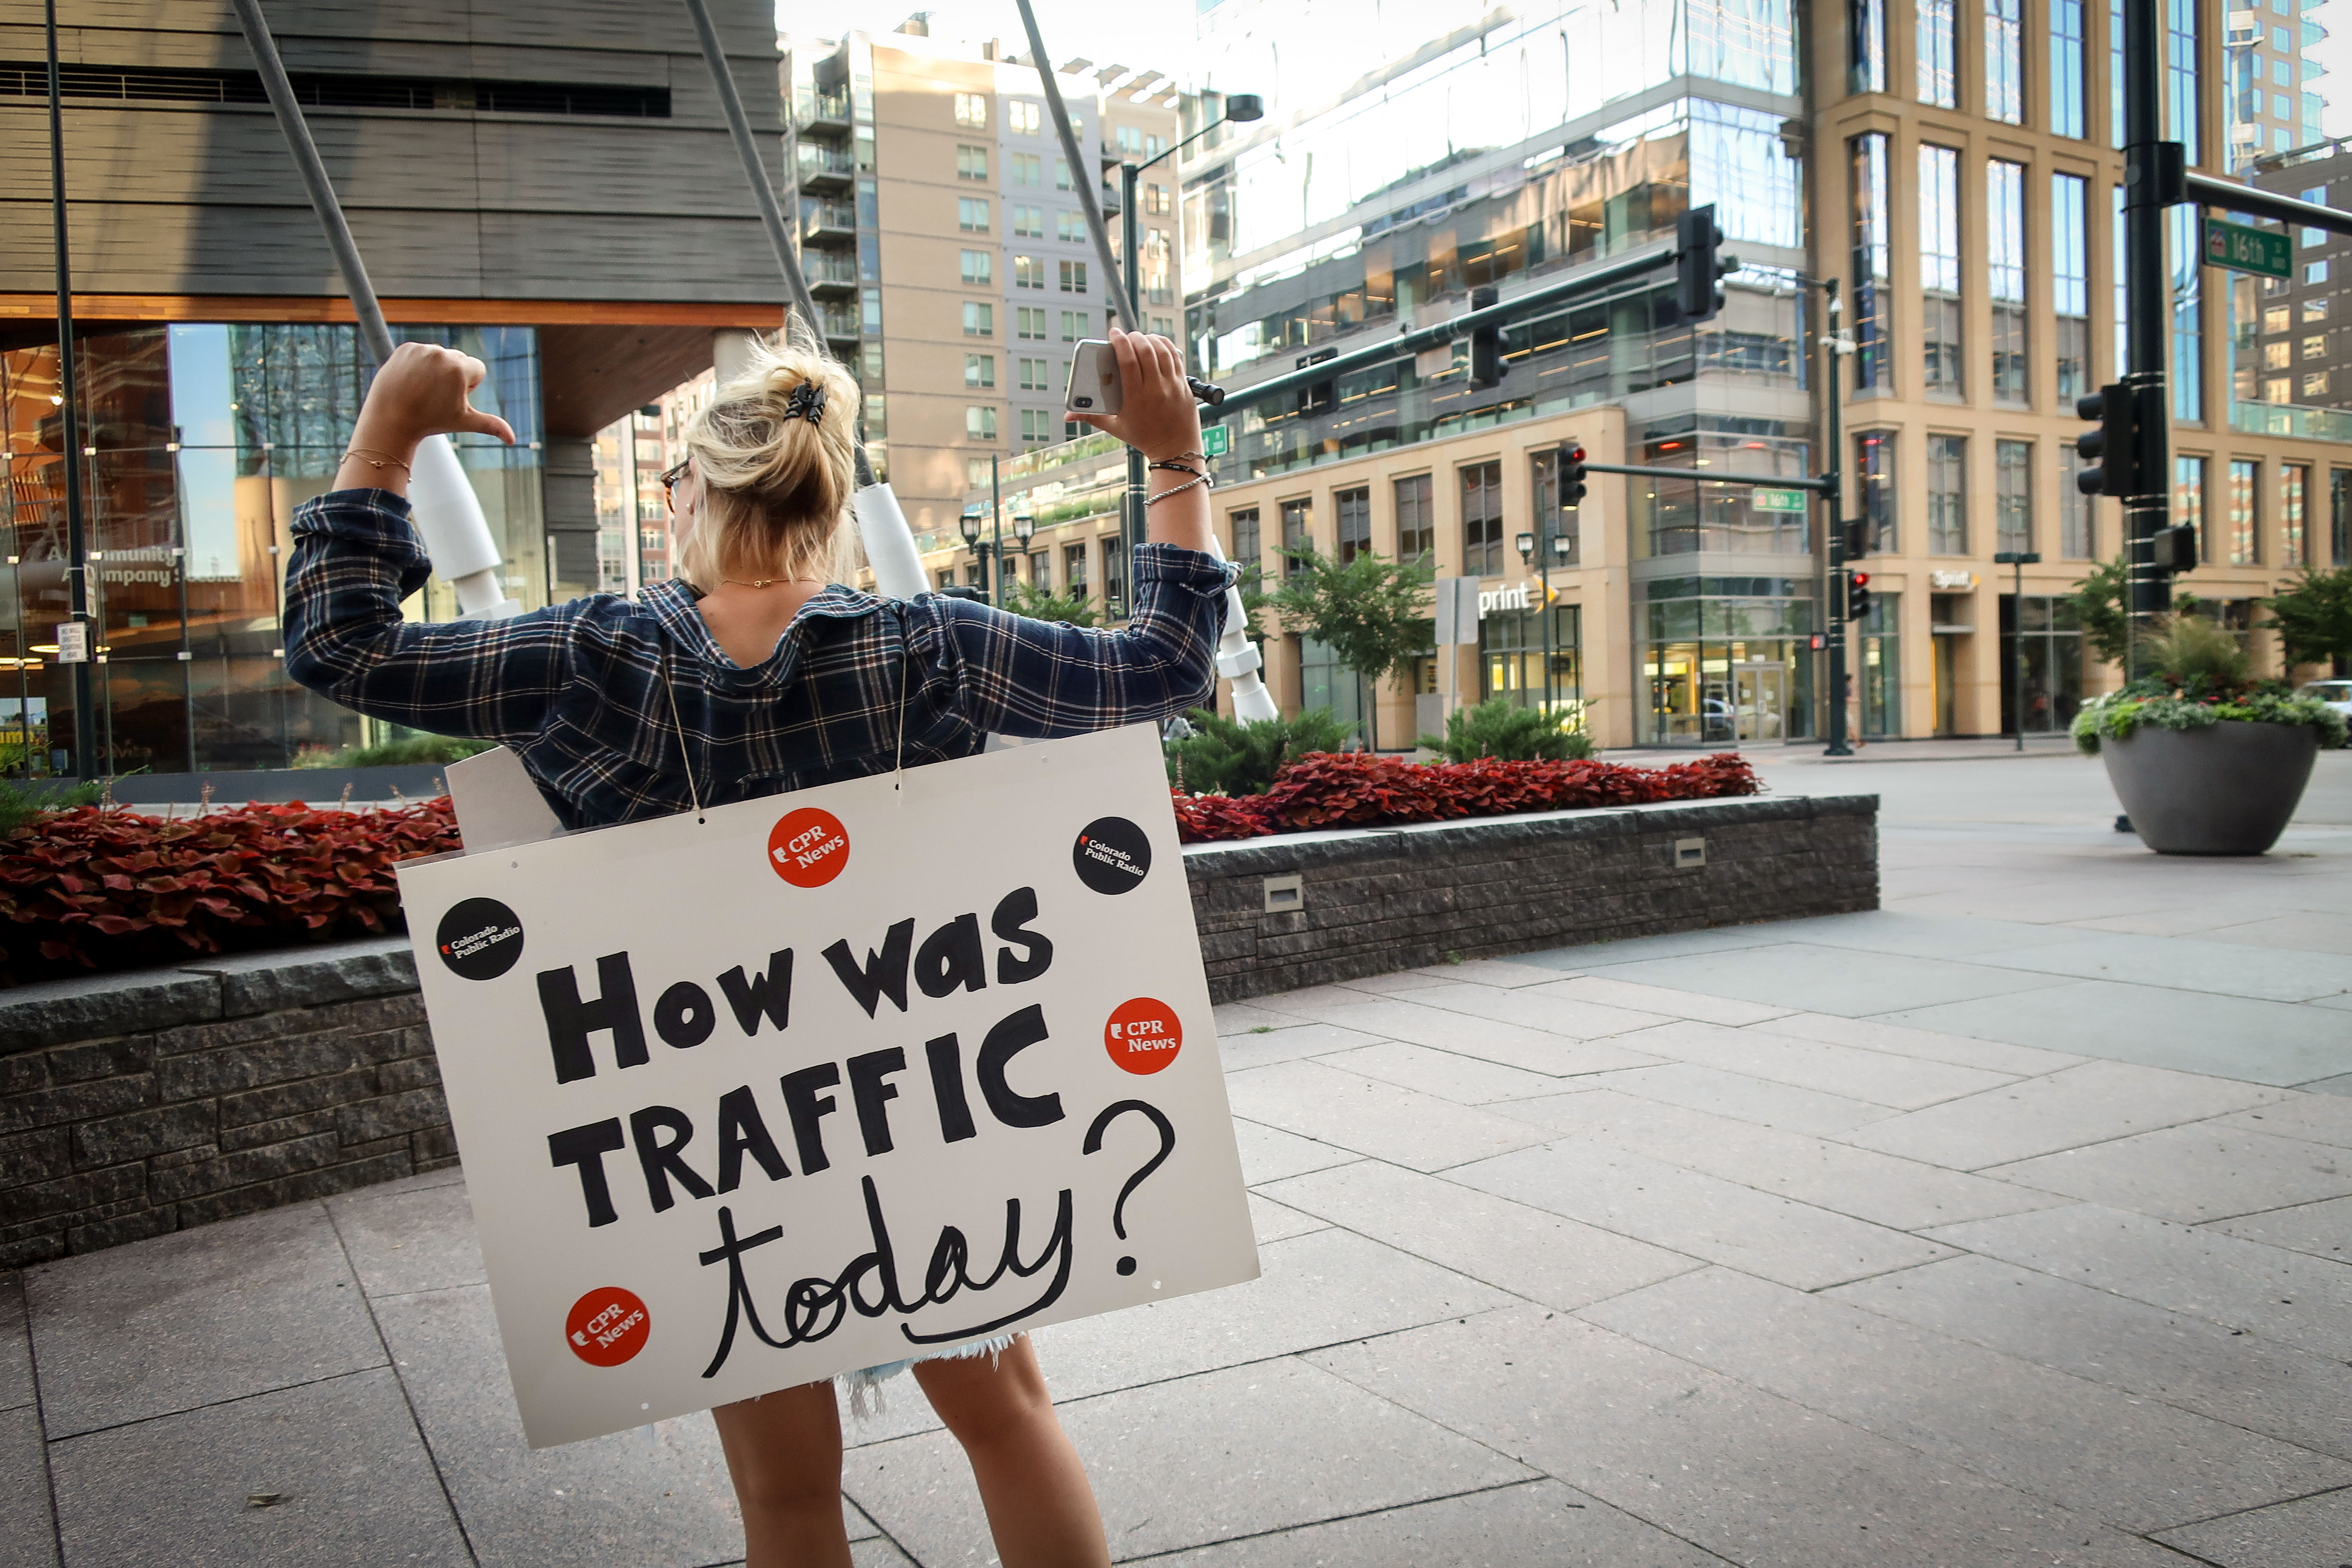 We wanted to know more about your commute, so we asked a few folks downtown. Now, we want to ask you too.